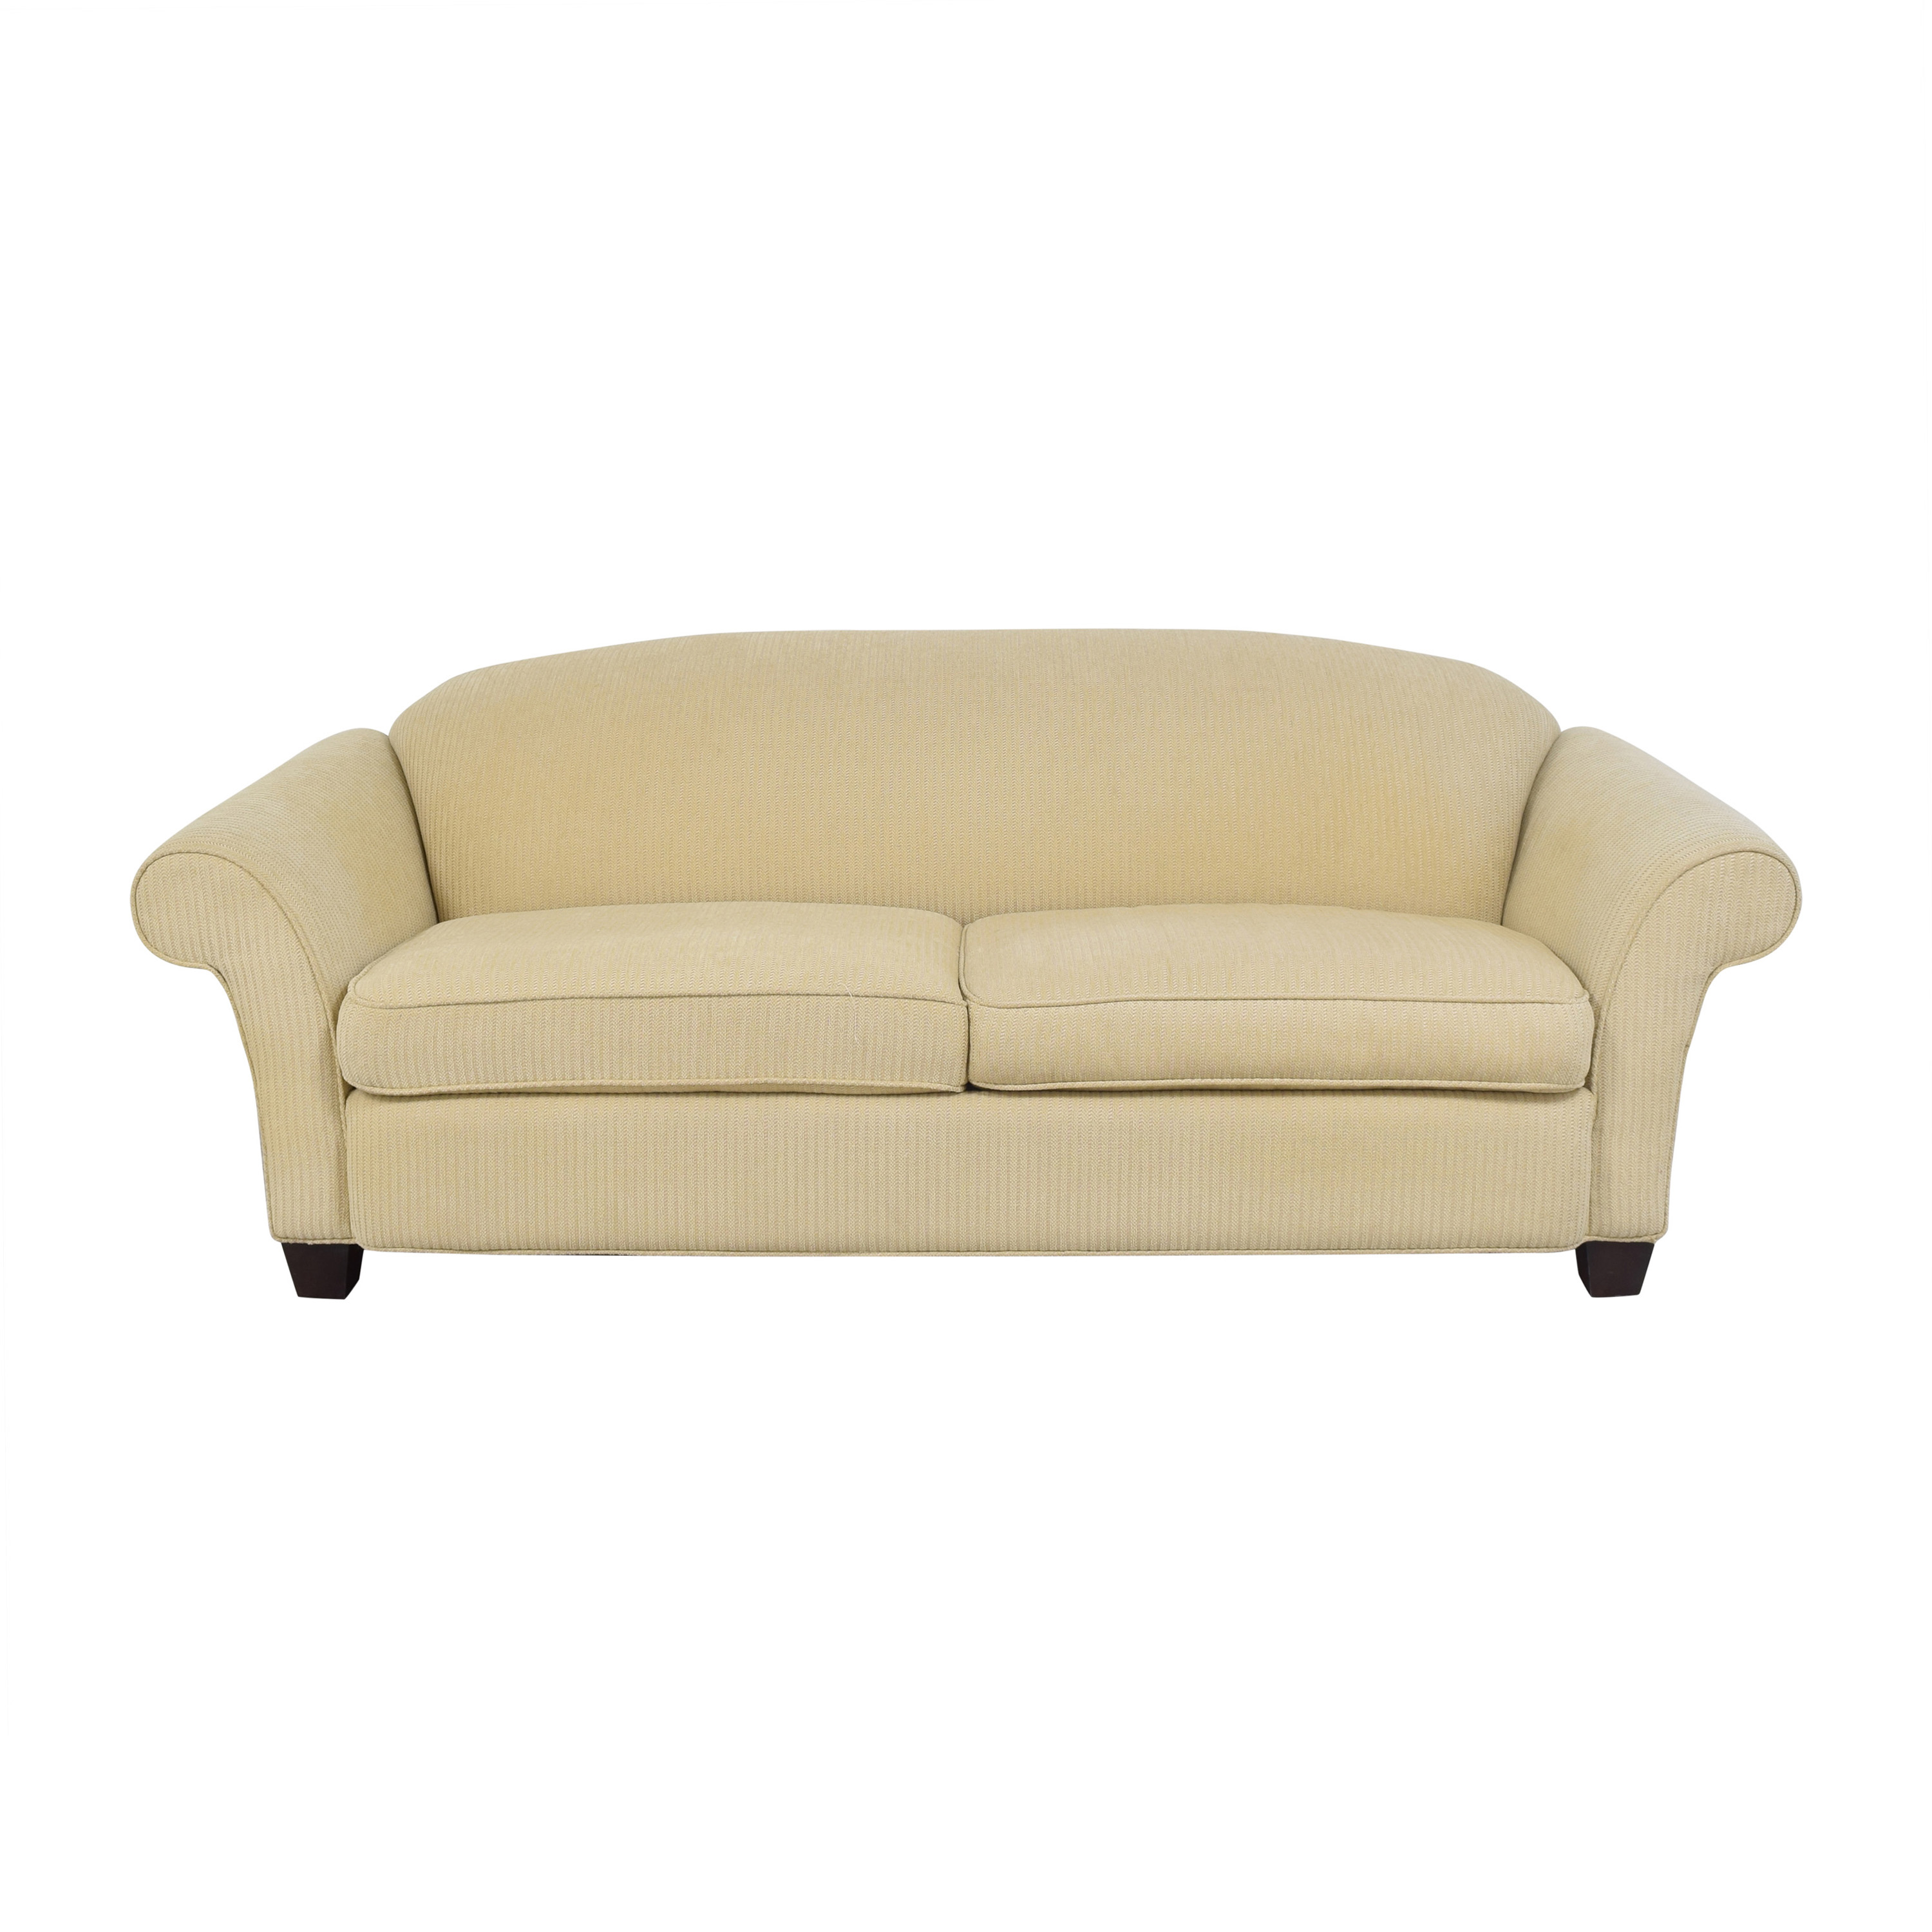 Braxton Culler Two Cushion Roll Arm Sofa / Sofas